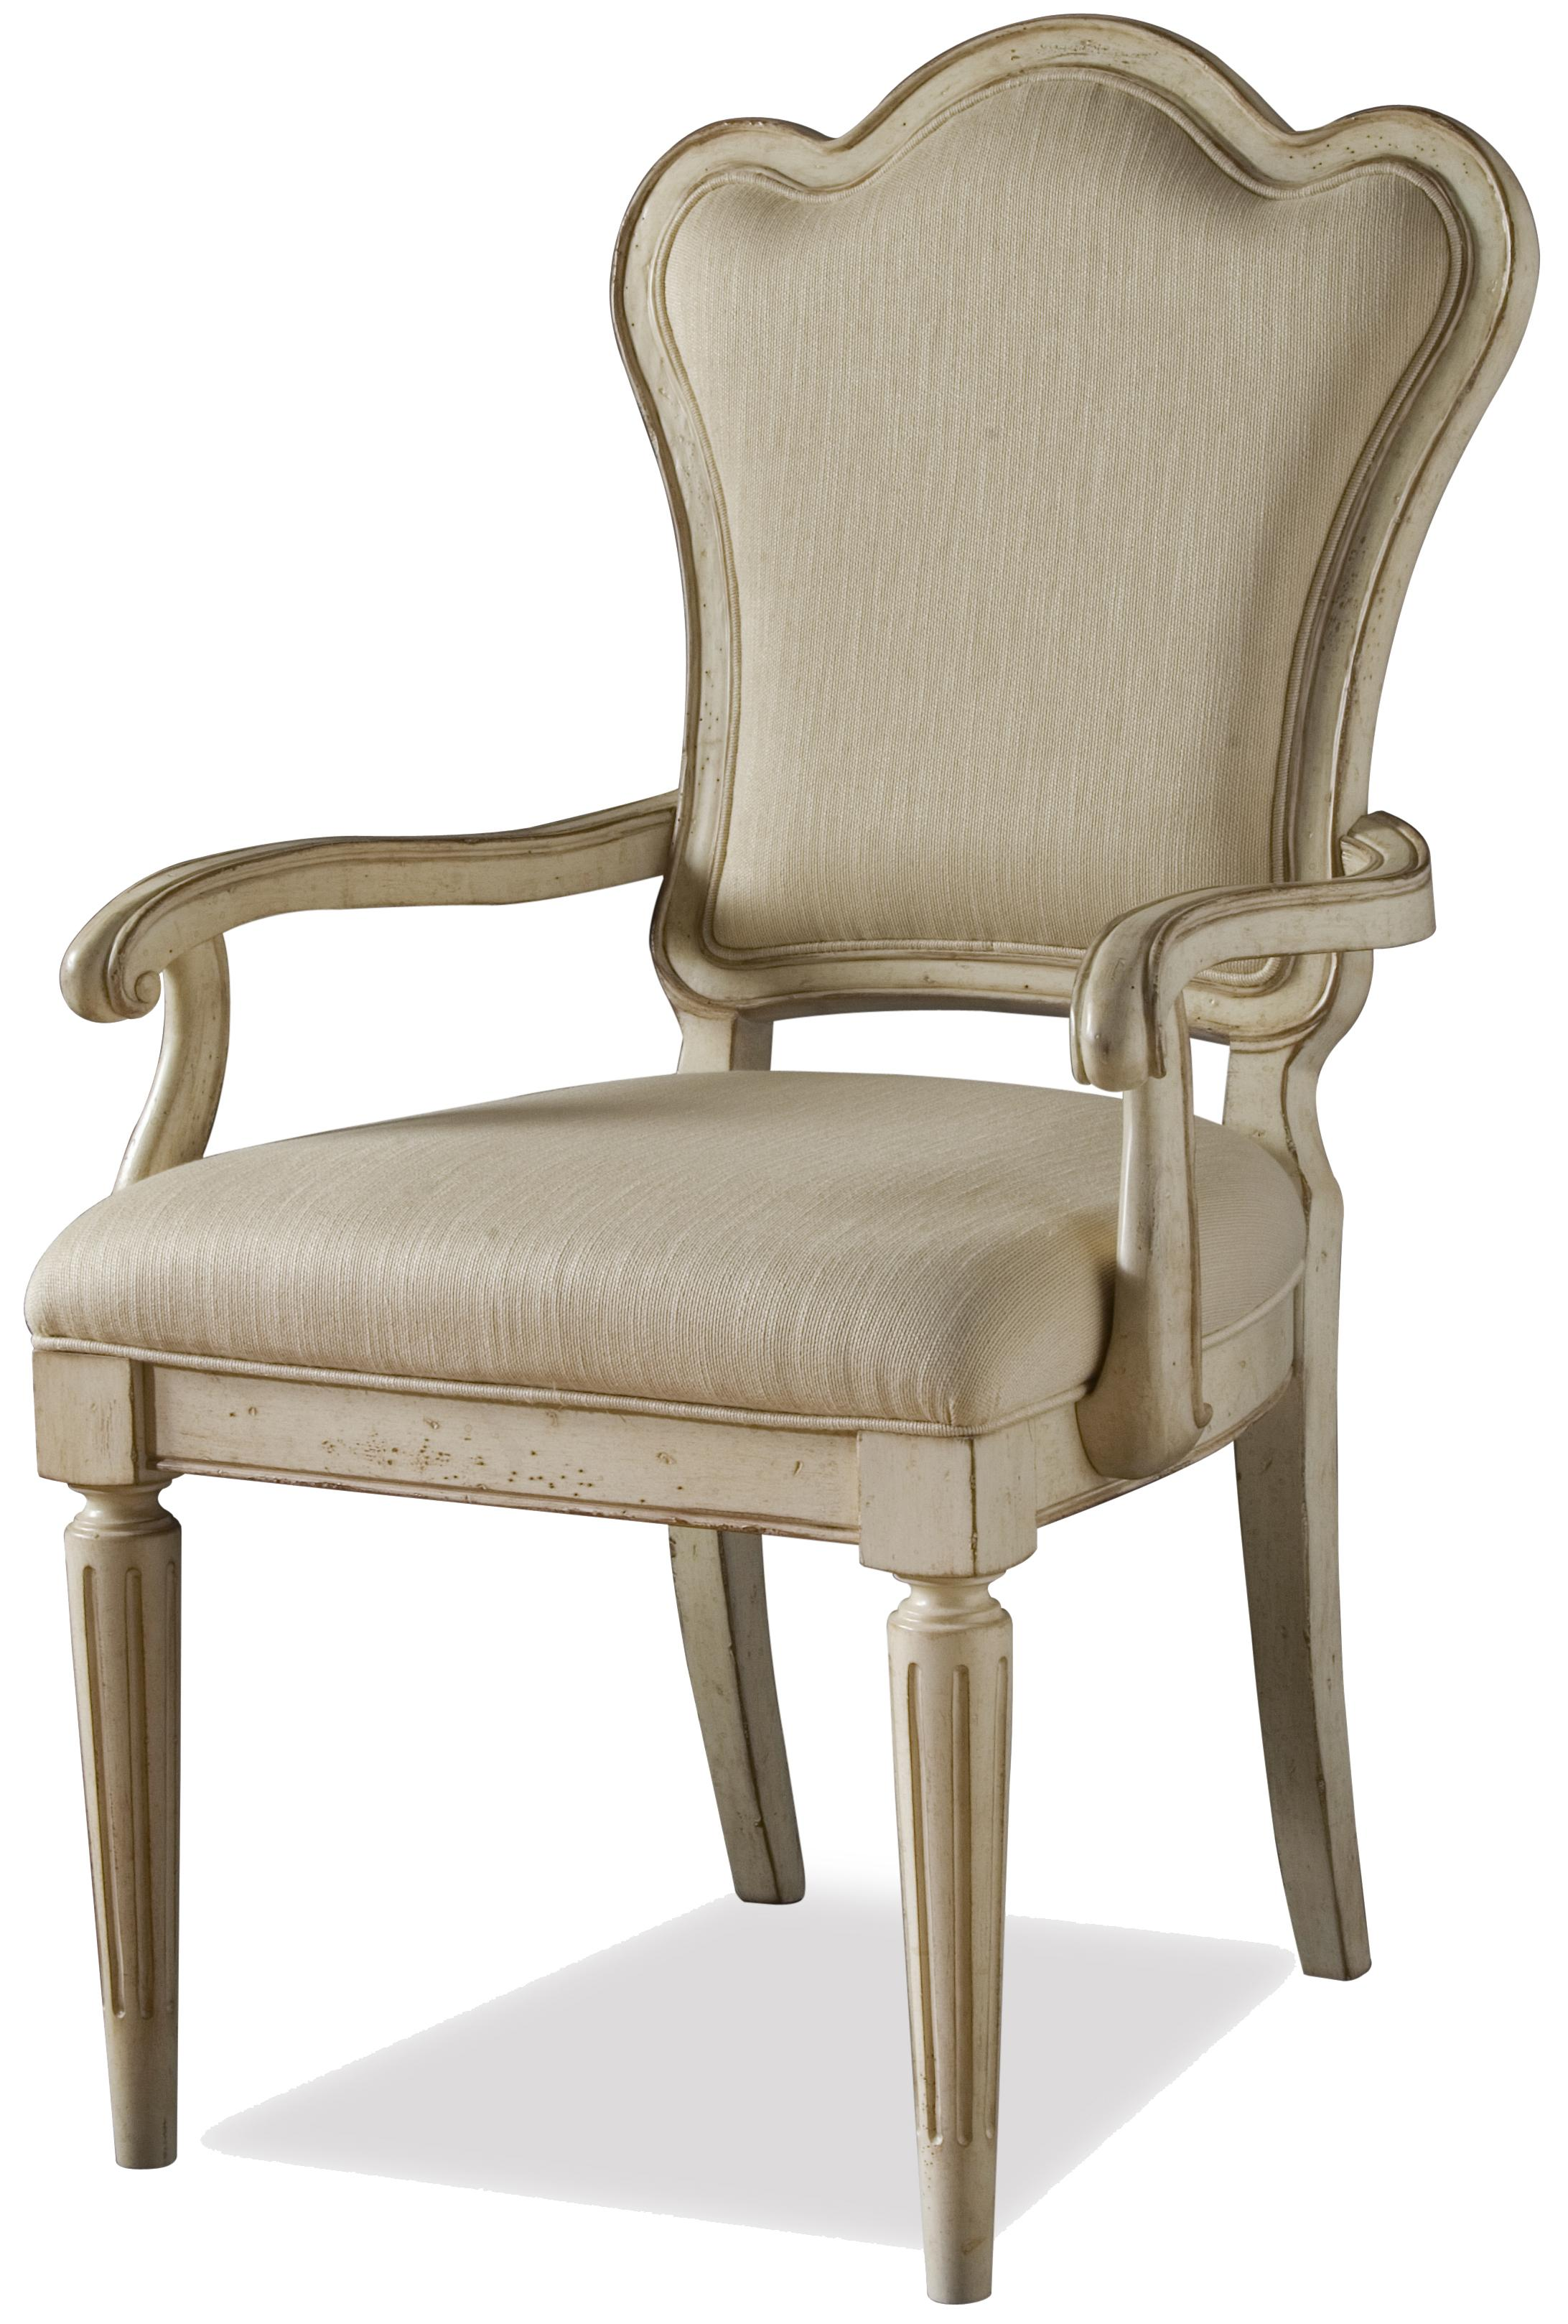 A.R.T. Furniture Inc Provenance Upholstered Back Arm Chair - Item Number: 76207